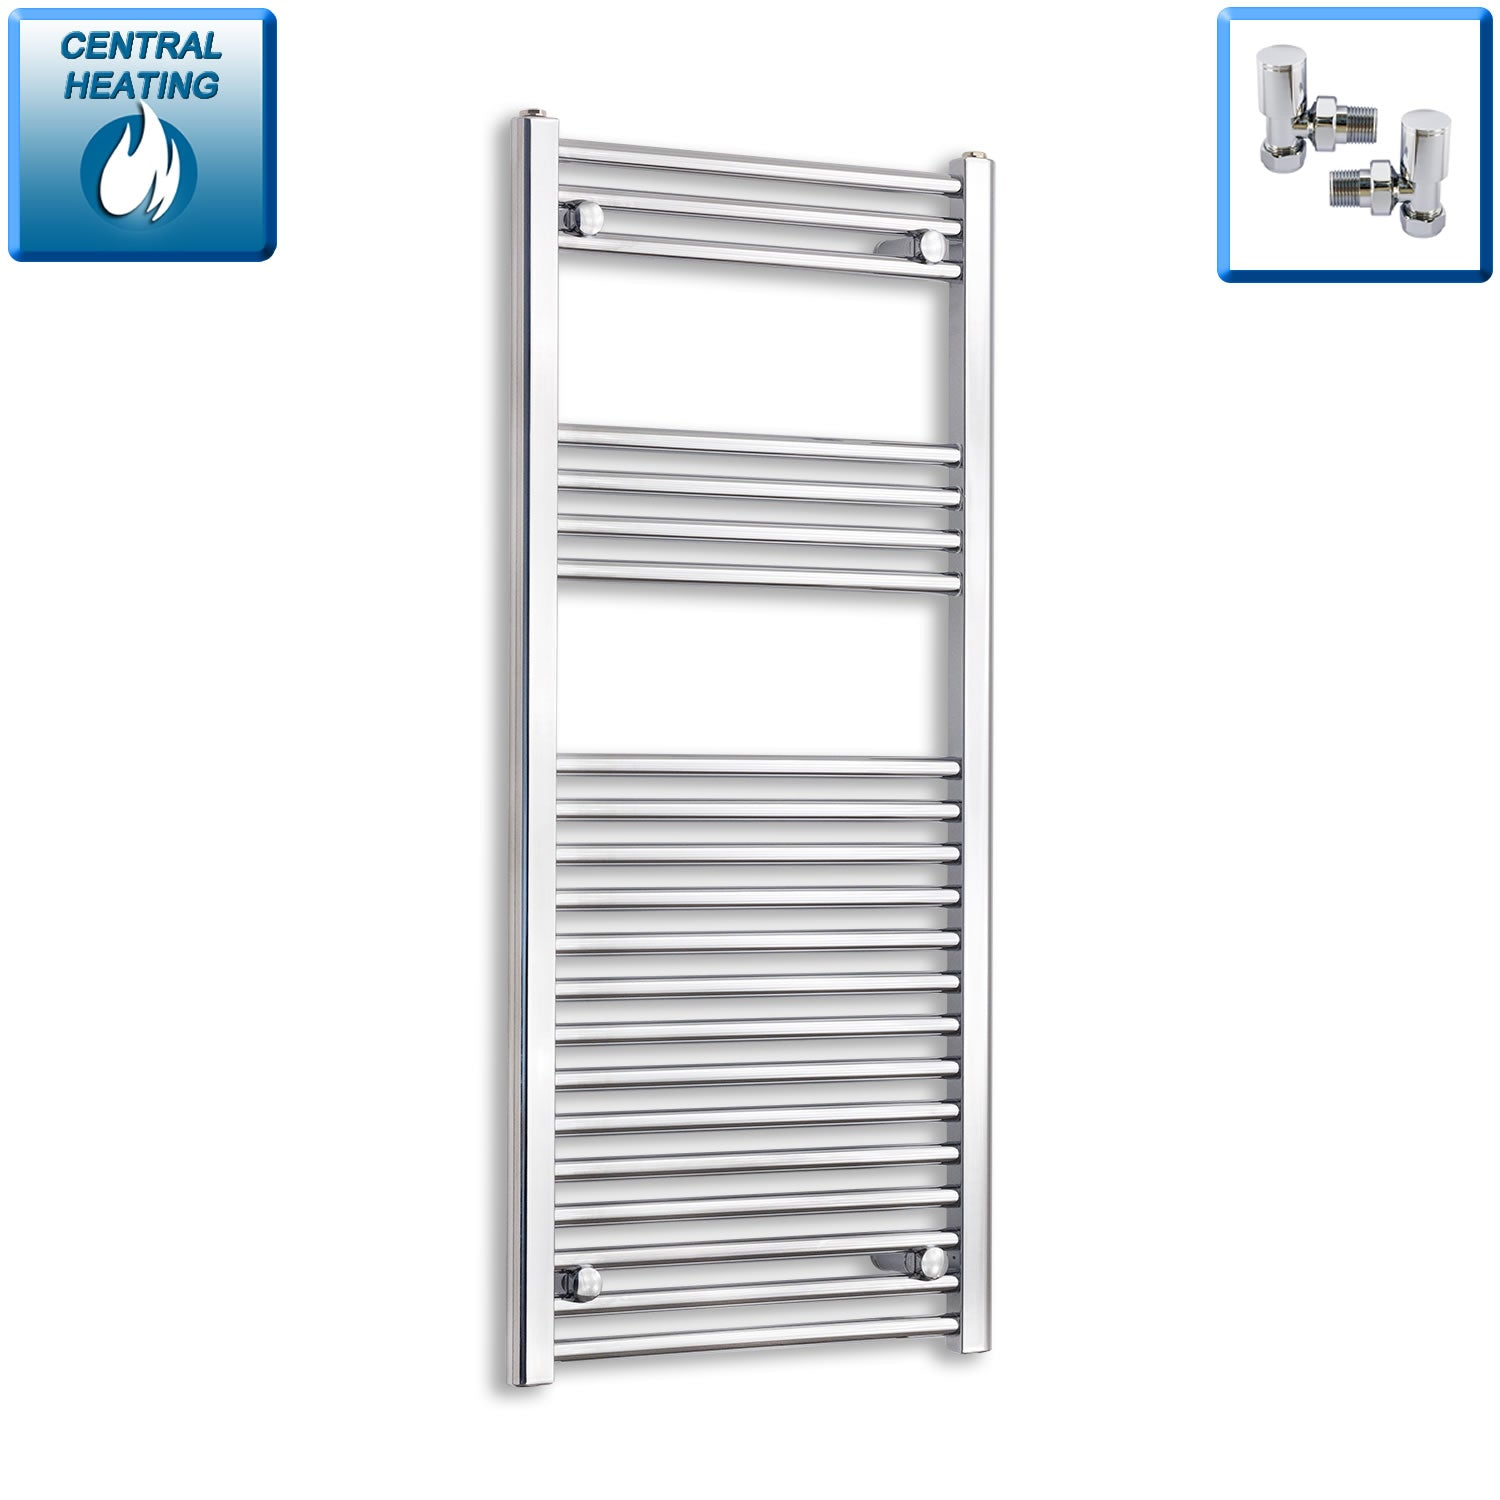 500mm Wide 1100mm High Chrome Towel Rail Radiator With Angled Valve